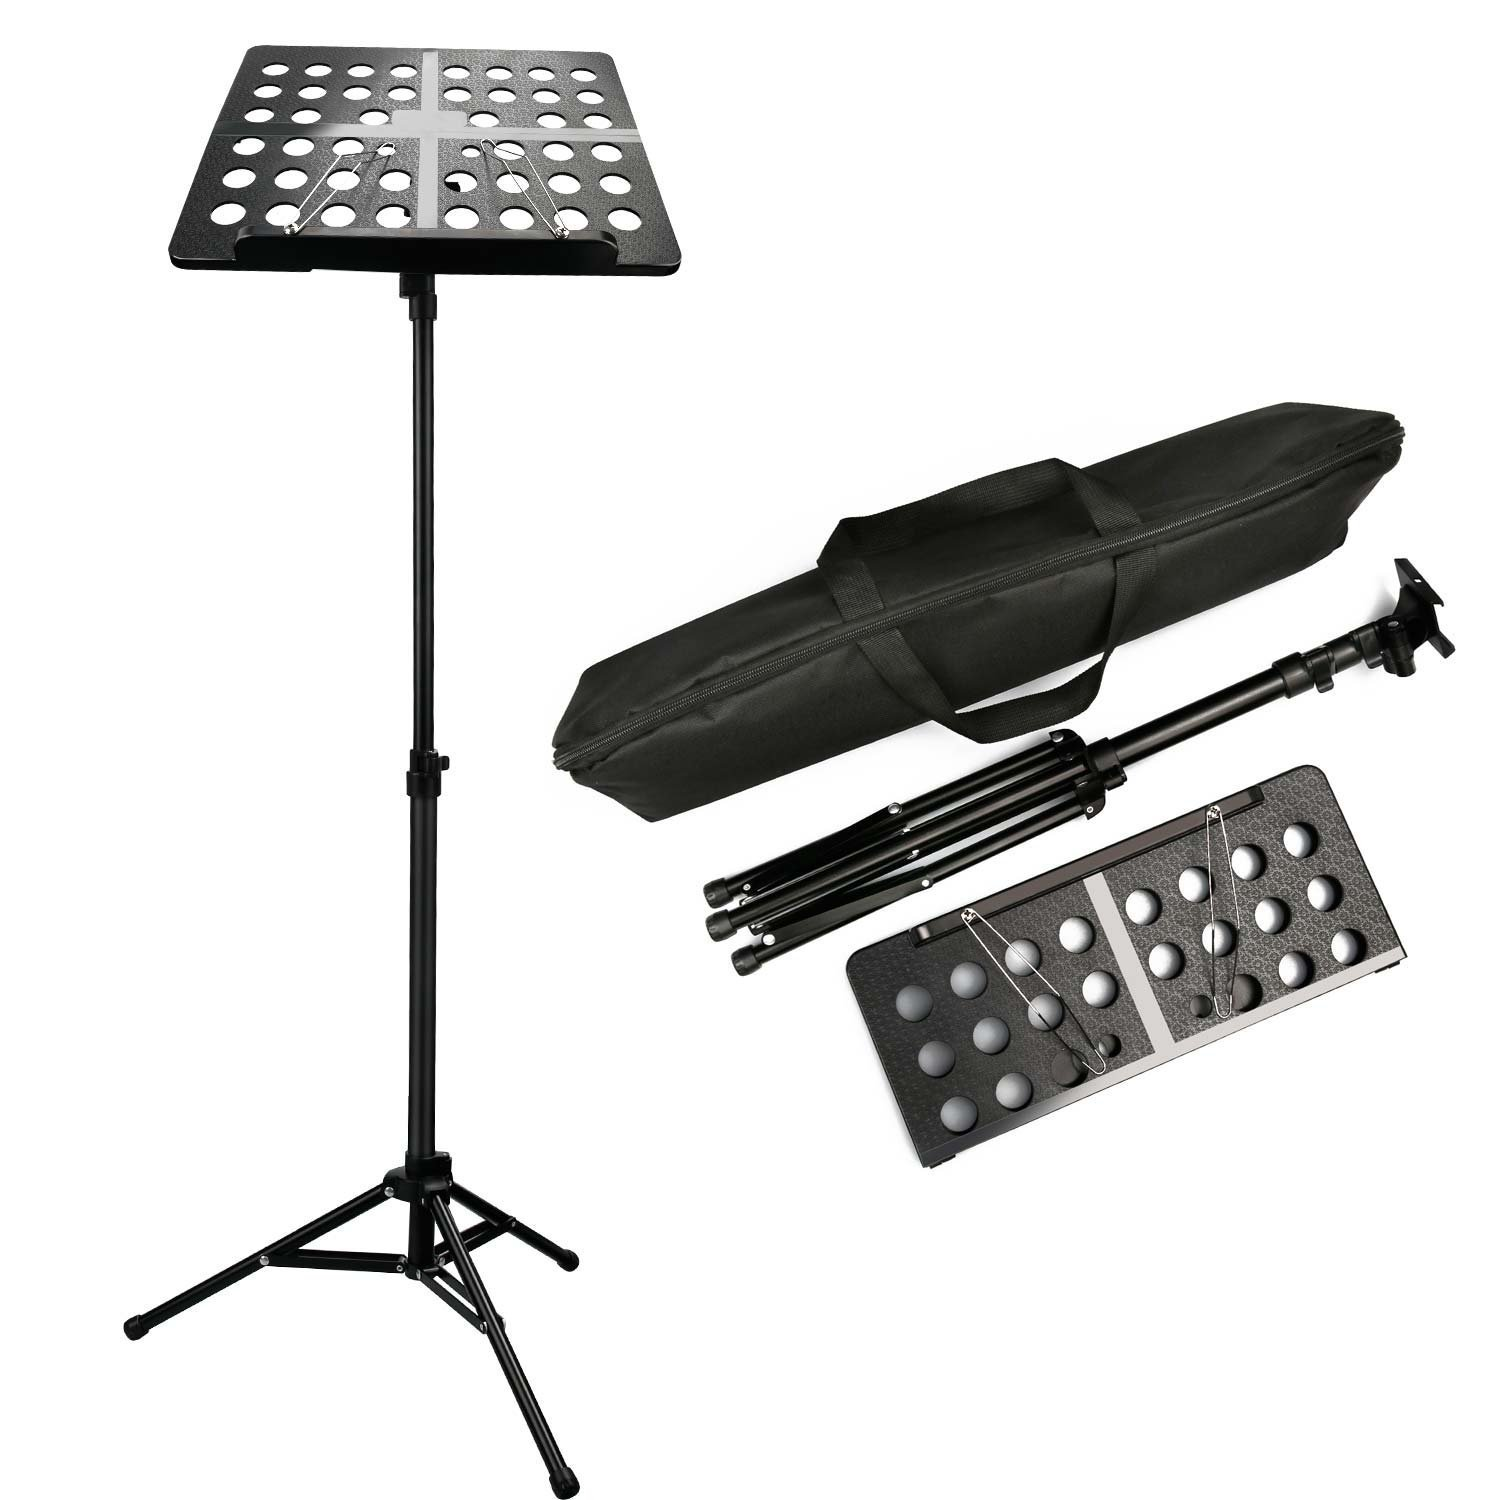 Afuaim Music Stand Folding Height-Adjustable Portable Small Orchestra Sheet Music Stand with Carrying Bag-Black (AMS-1)